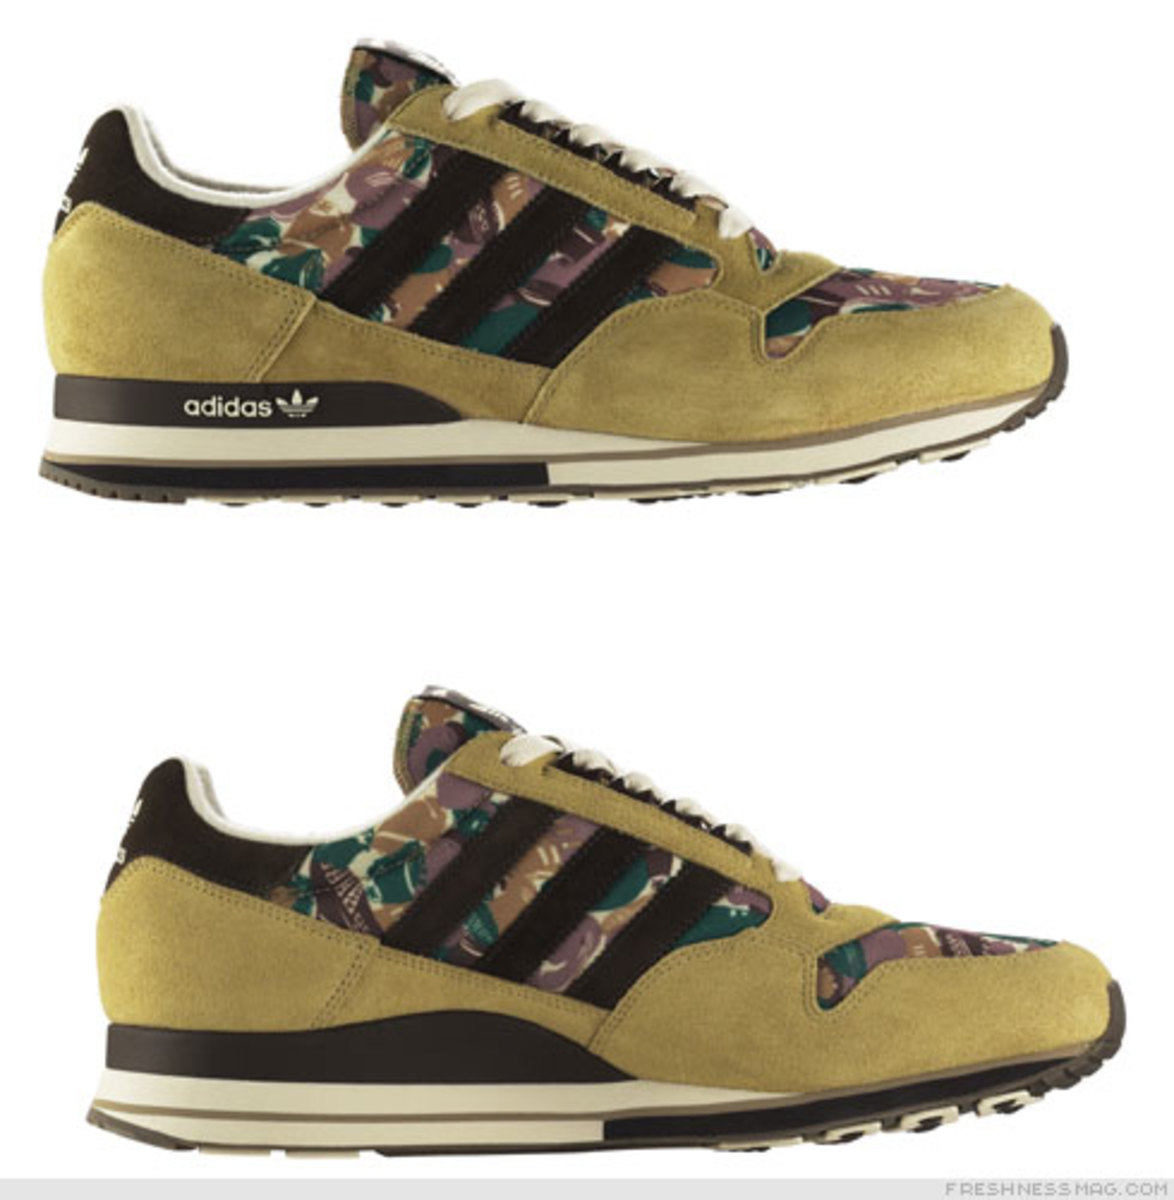 Freshness Feature: Adidas ZX Family - Camo Pack - 13